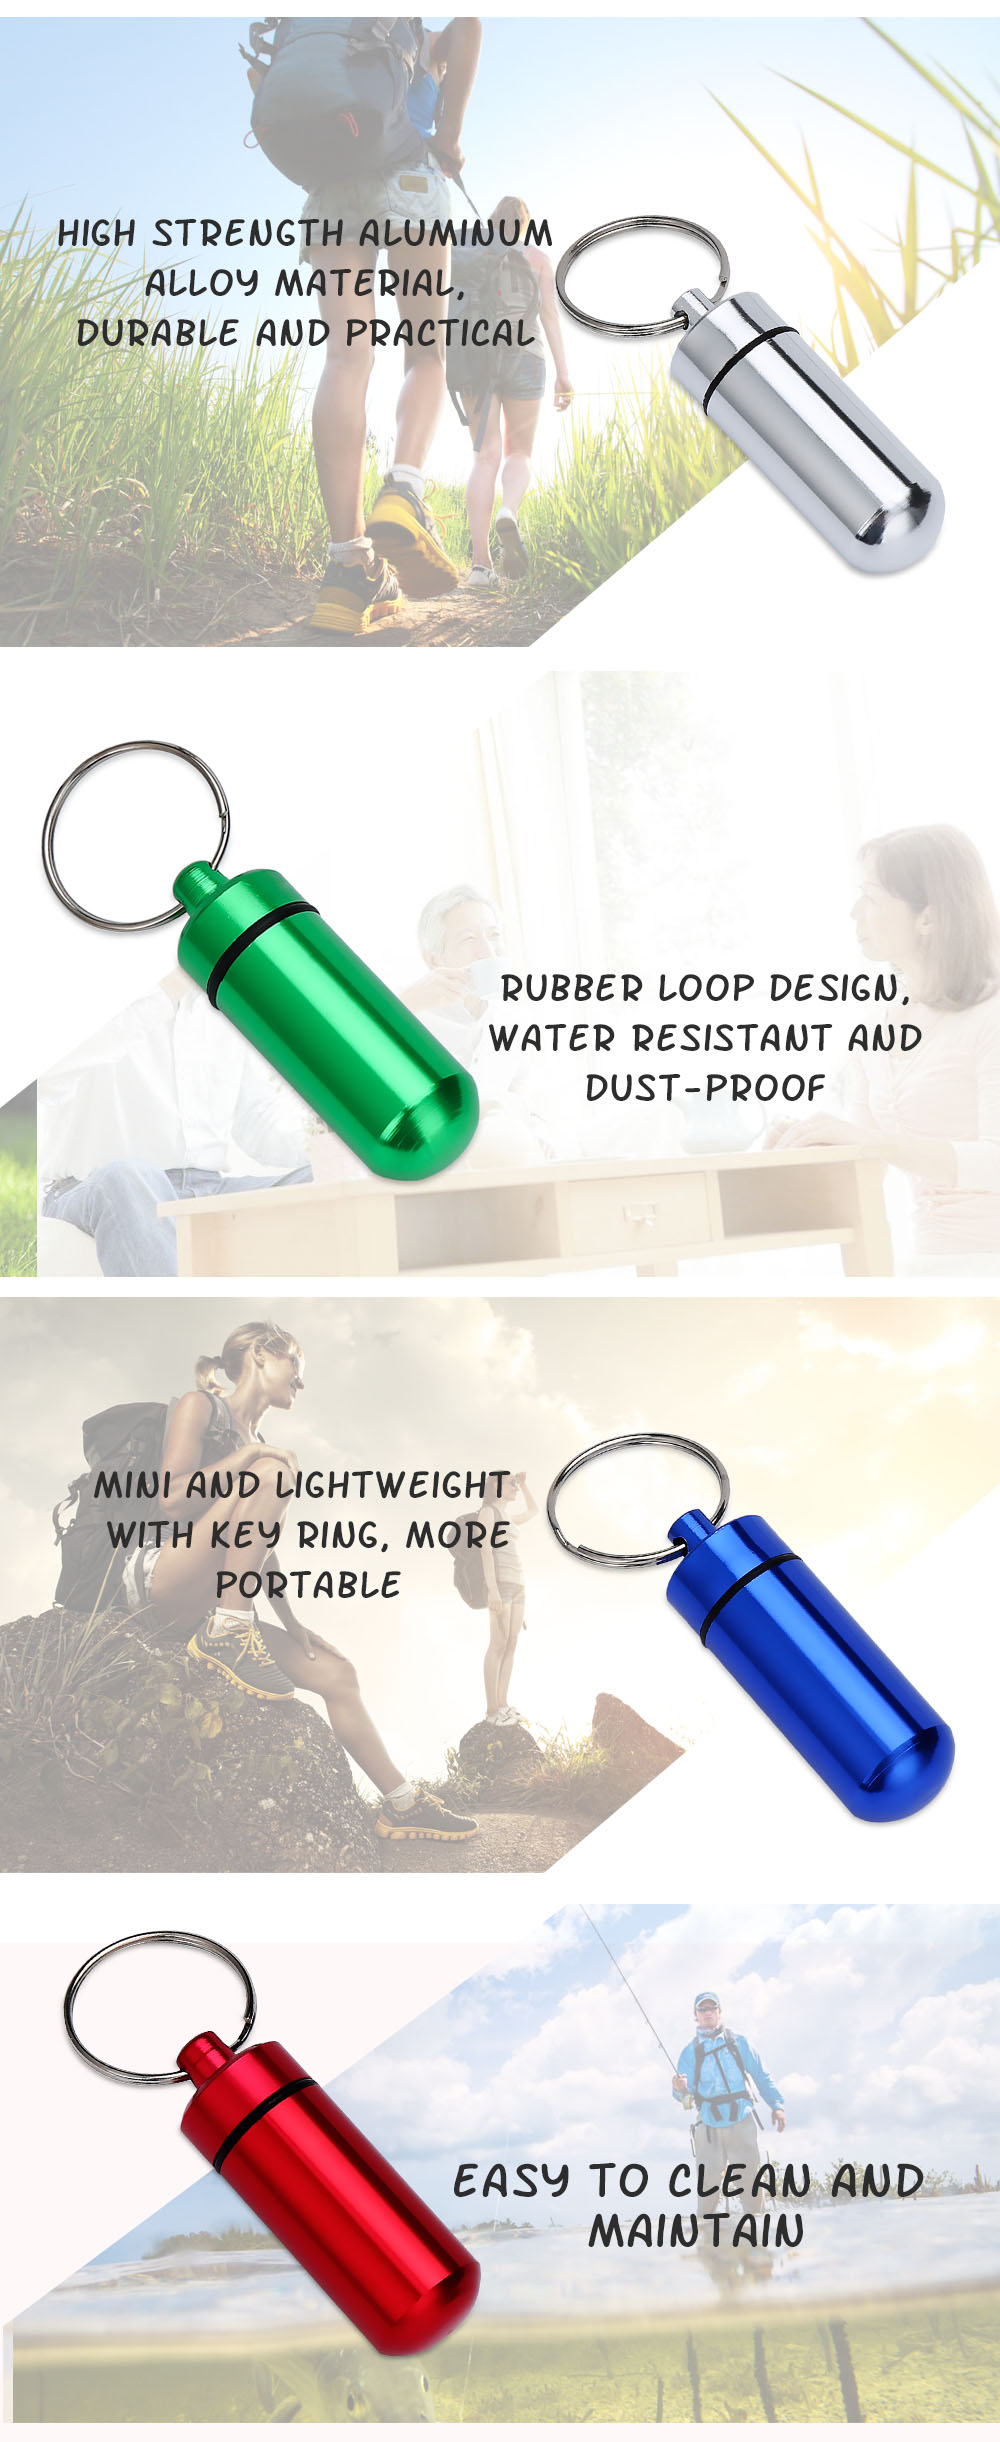 Aotu AT7605 Outdoor Emergency Portable Aluminum Alloy Medicine Pot Bottle with Key Ring